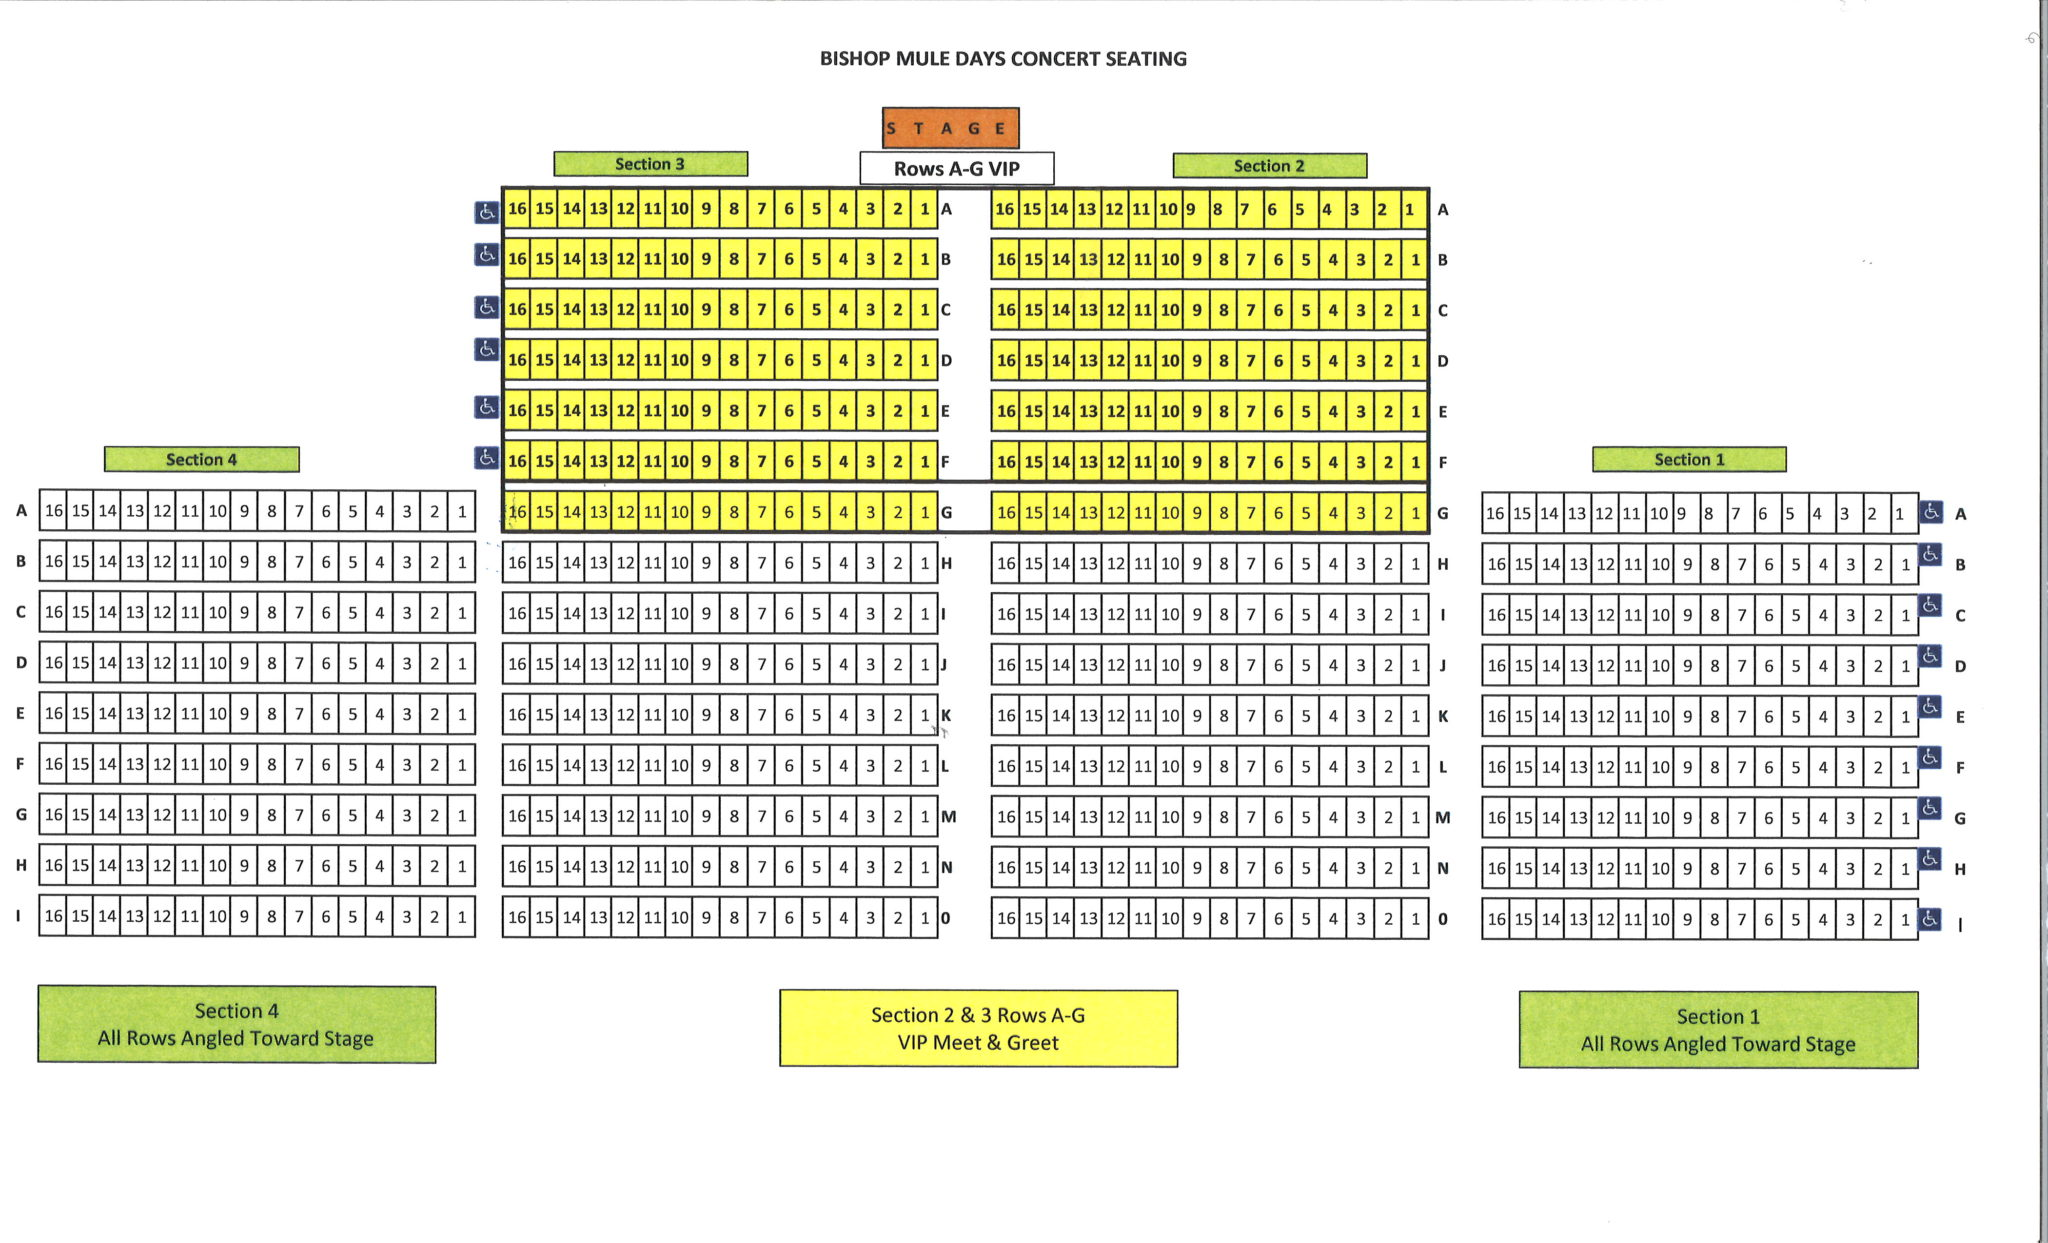 Mule Days Concert Seating Map